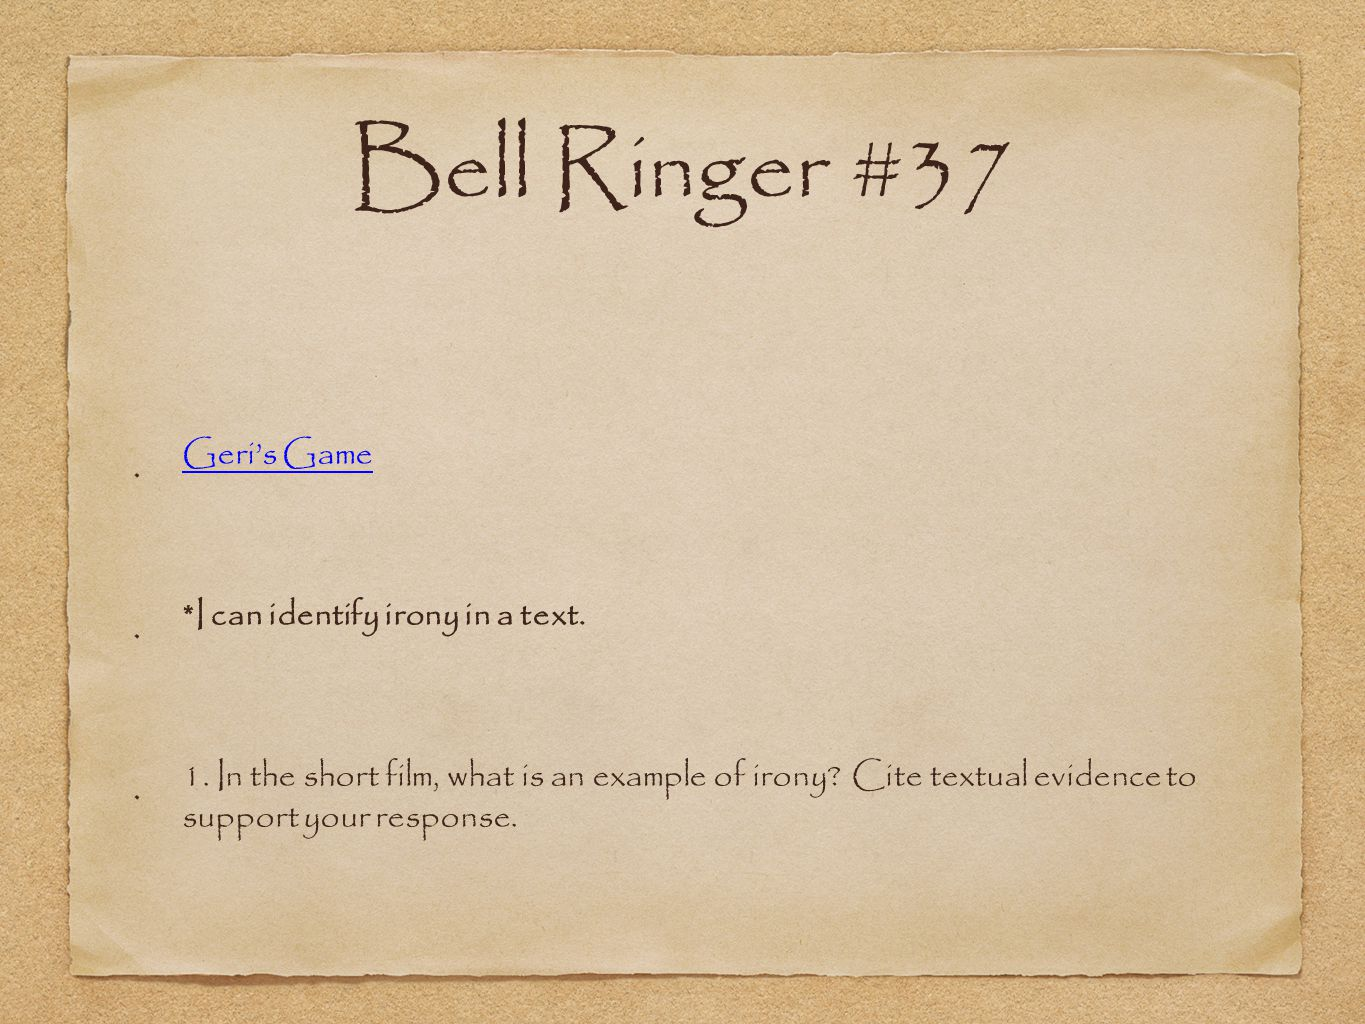 Bell Ringer #37 Geri's Game *I can identify irony in a text.